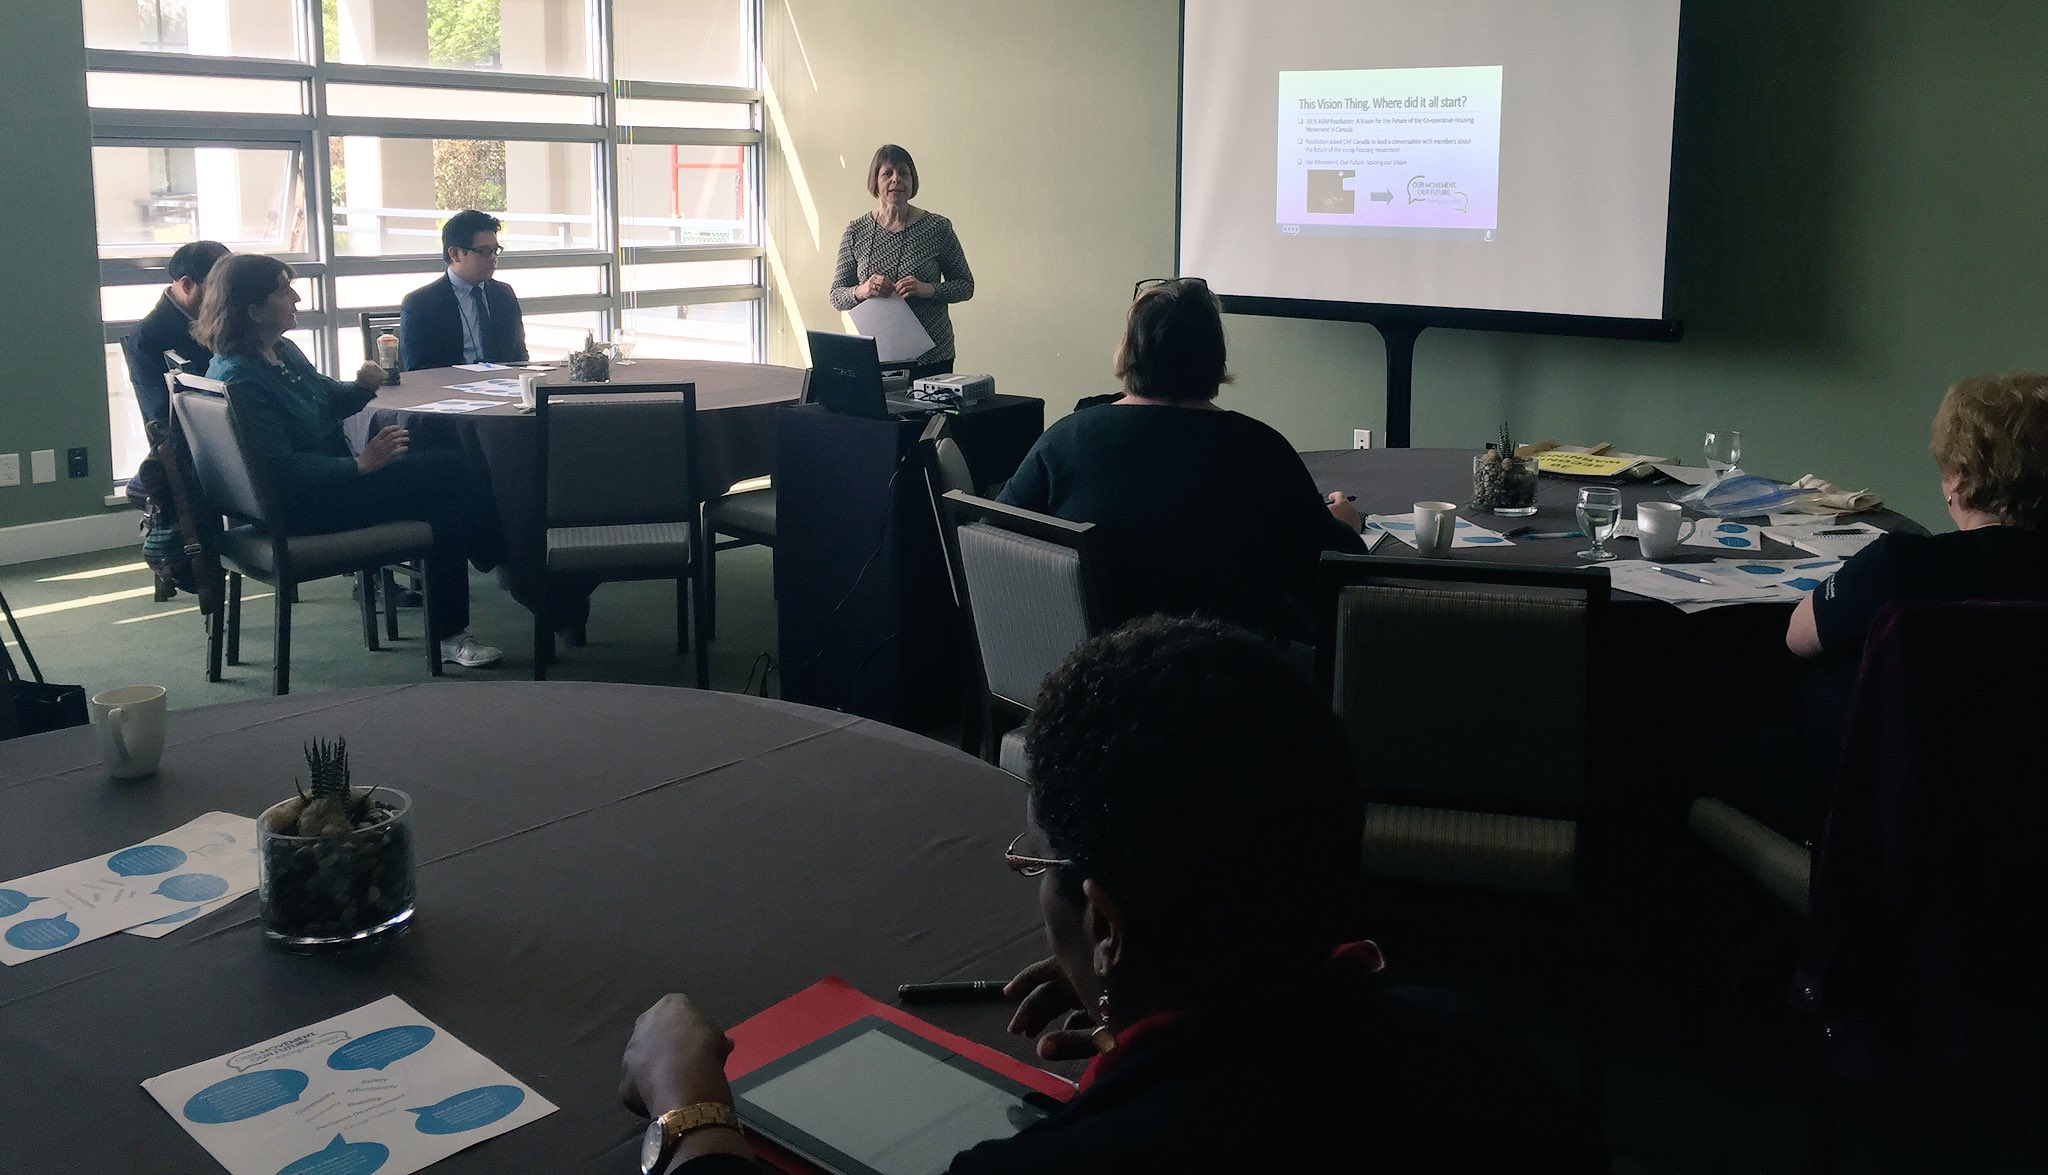 Delegates join @CHFCanada on thoughts, ideas and vision for our co-op housing future. https://t.co/ymvMFPZj39 #coops #strongercommunities https://t.co/YisOddQNO4